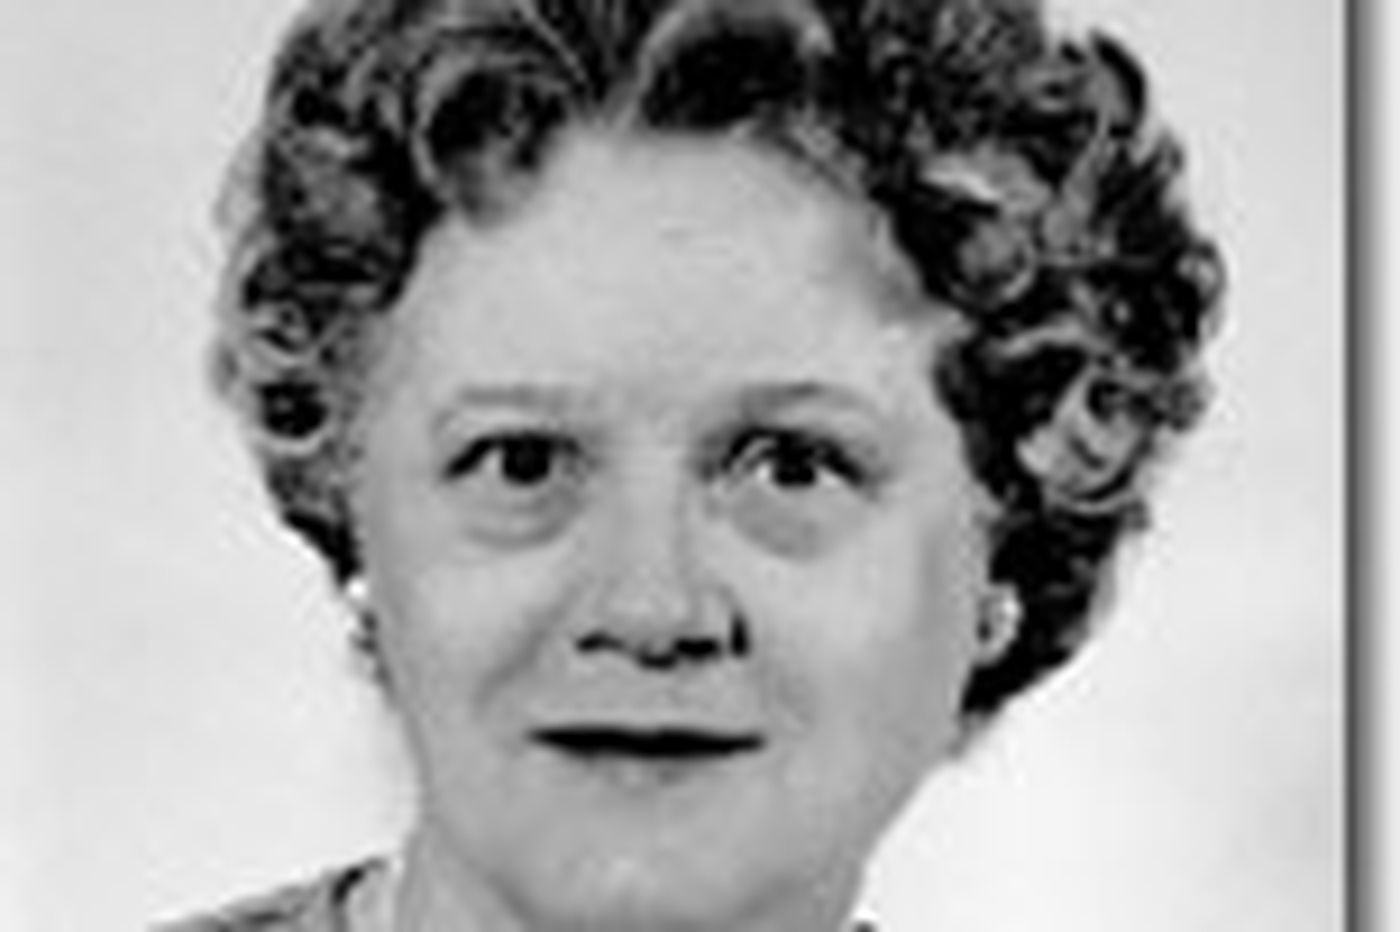 Merylee E. Werthan Jost, 88, physician who entered field of neurosurgery in the 1960s